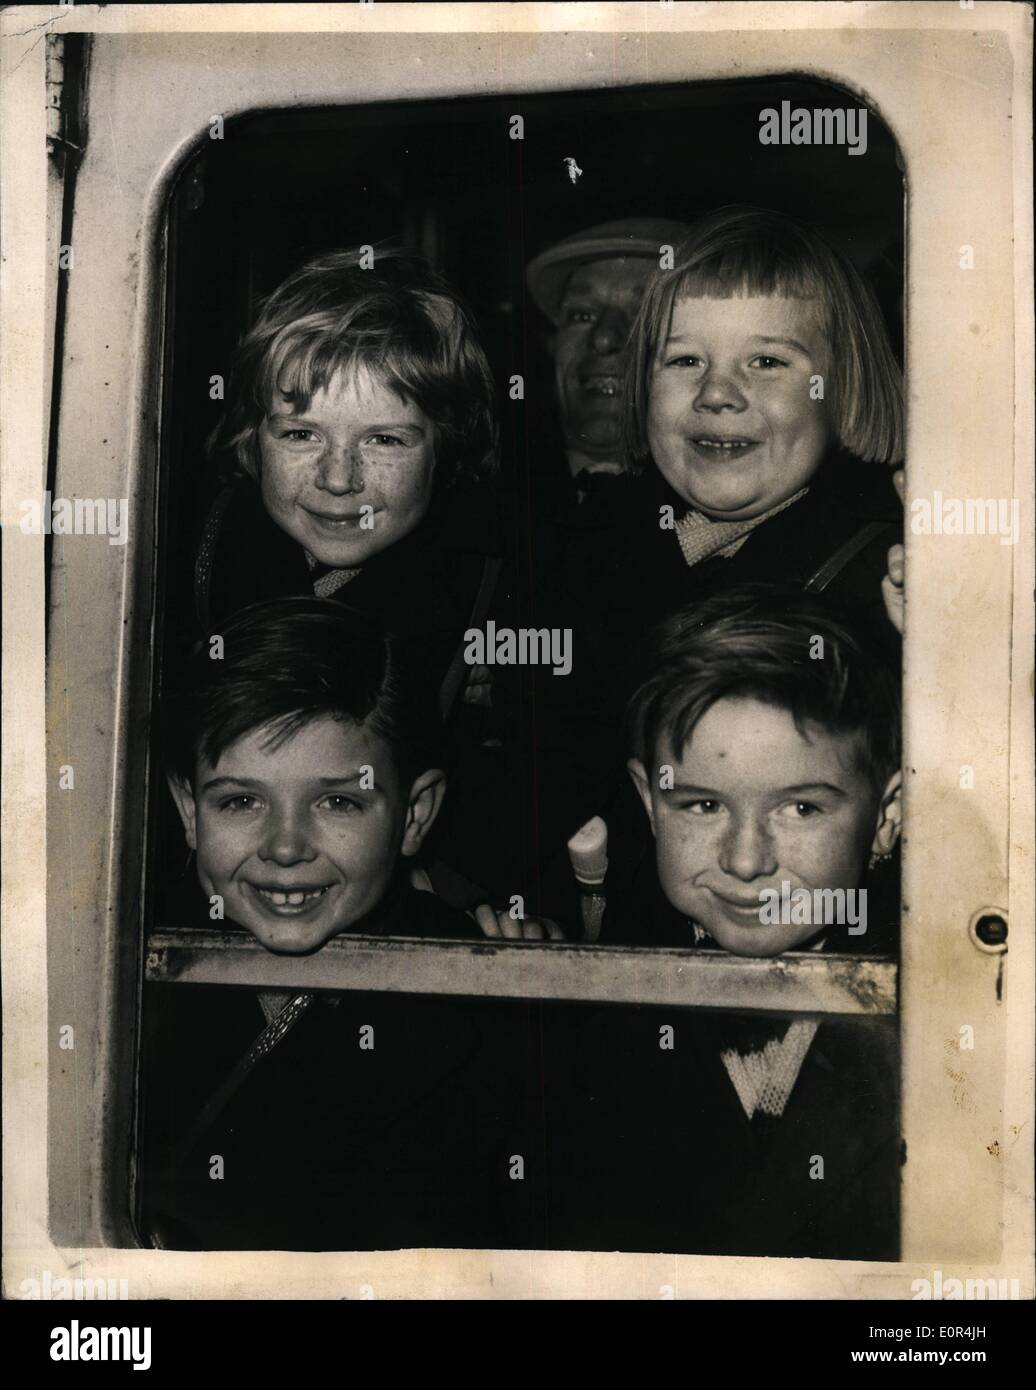 Mar. 03, 1958 - Sponsored Families emigrate to Australia. Four youngsters from stoke newingto: Sixty two families sponsored by the Rotary Organisation in Australia - left Waterloo Station this morning for the liner Orsova on way to a new life in Australia. Photo shows Four youngsters of the Stewart family of Stoke Newington - in the window of their carriage at Waterloo. They are Top L-R:- Susa: ( 4) ; Angela ( 5) ; with bottom L-R:- Malco ( 7) and Ian ( 8 ). They are going to Tasmania with their parents Mr. and Mrs. C.B.J. Stewart. - Stock Image